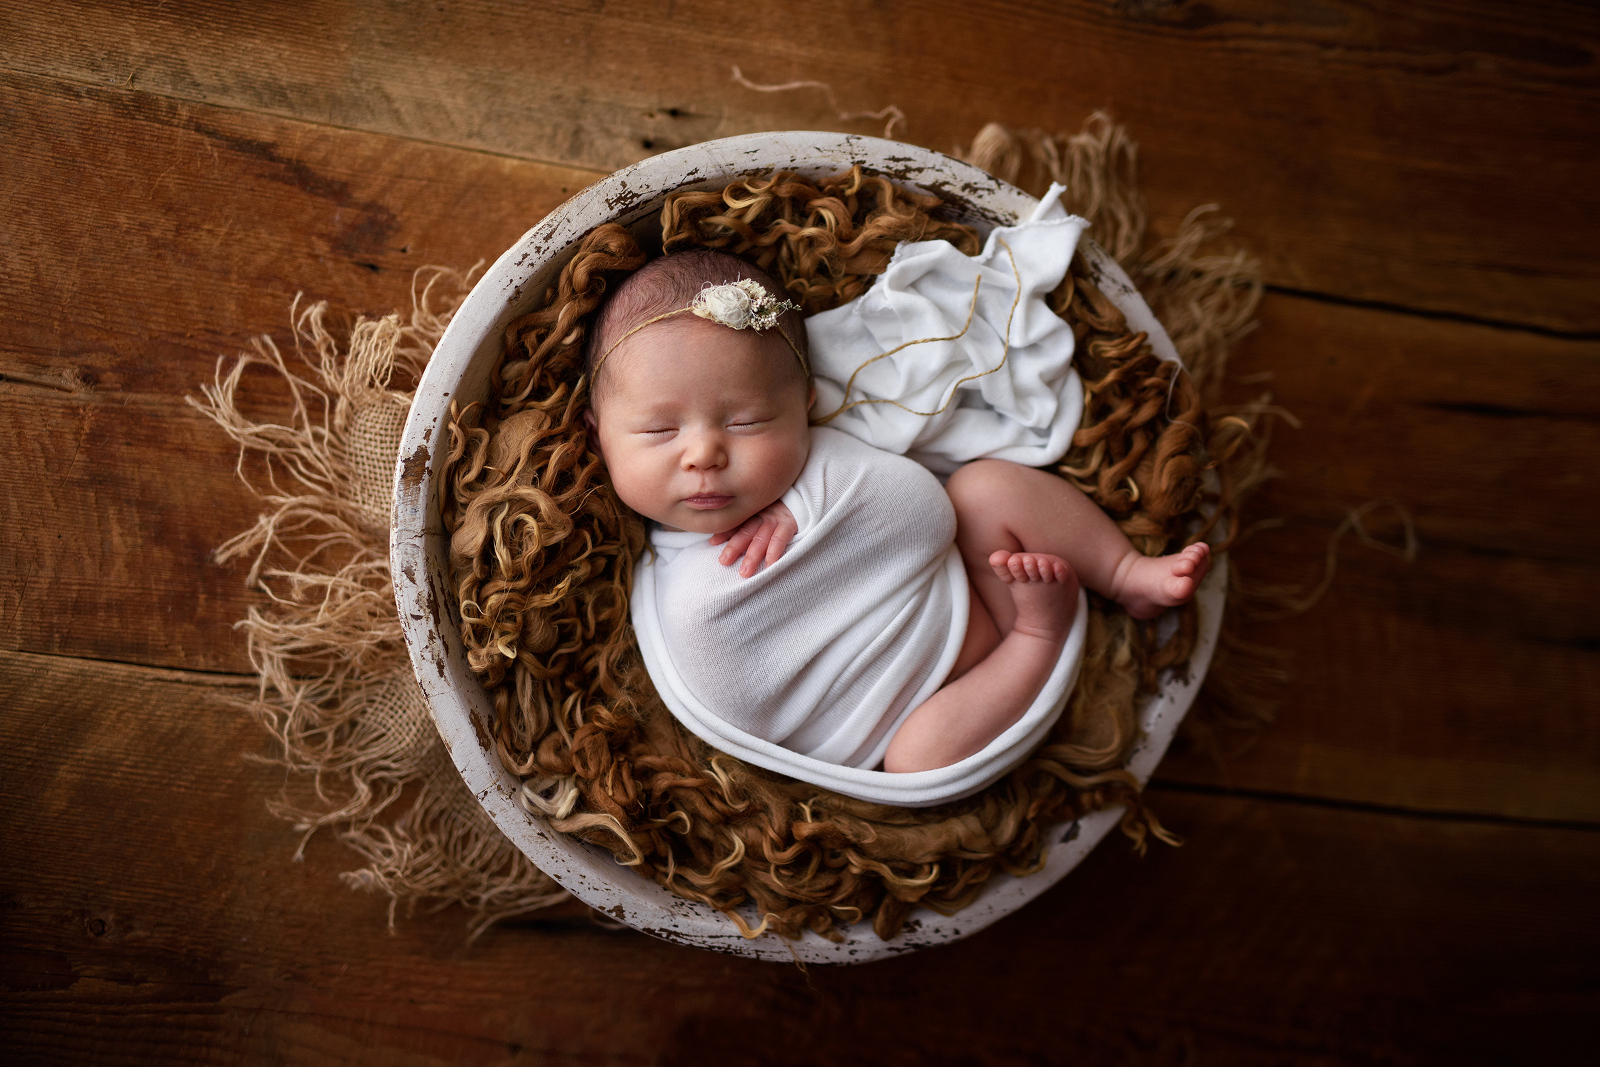 Portrait of asian baby girl wrapped in white in a white bowl